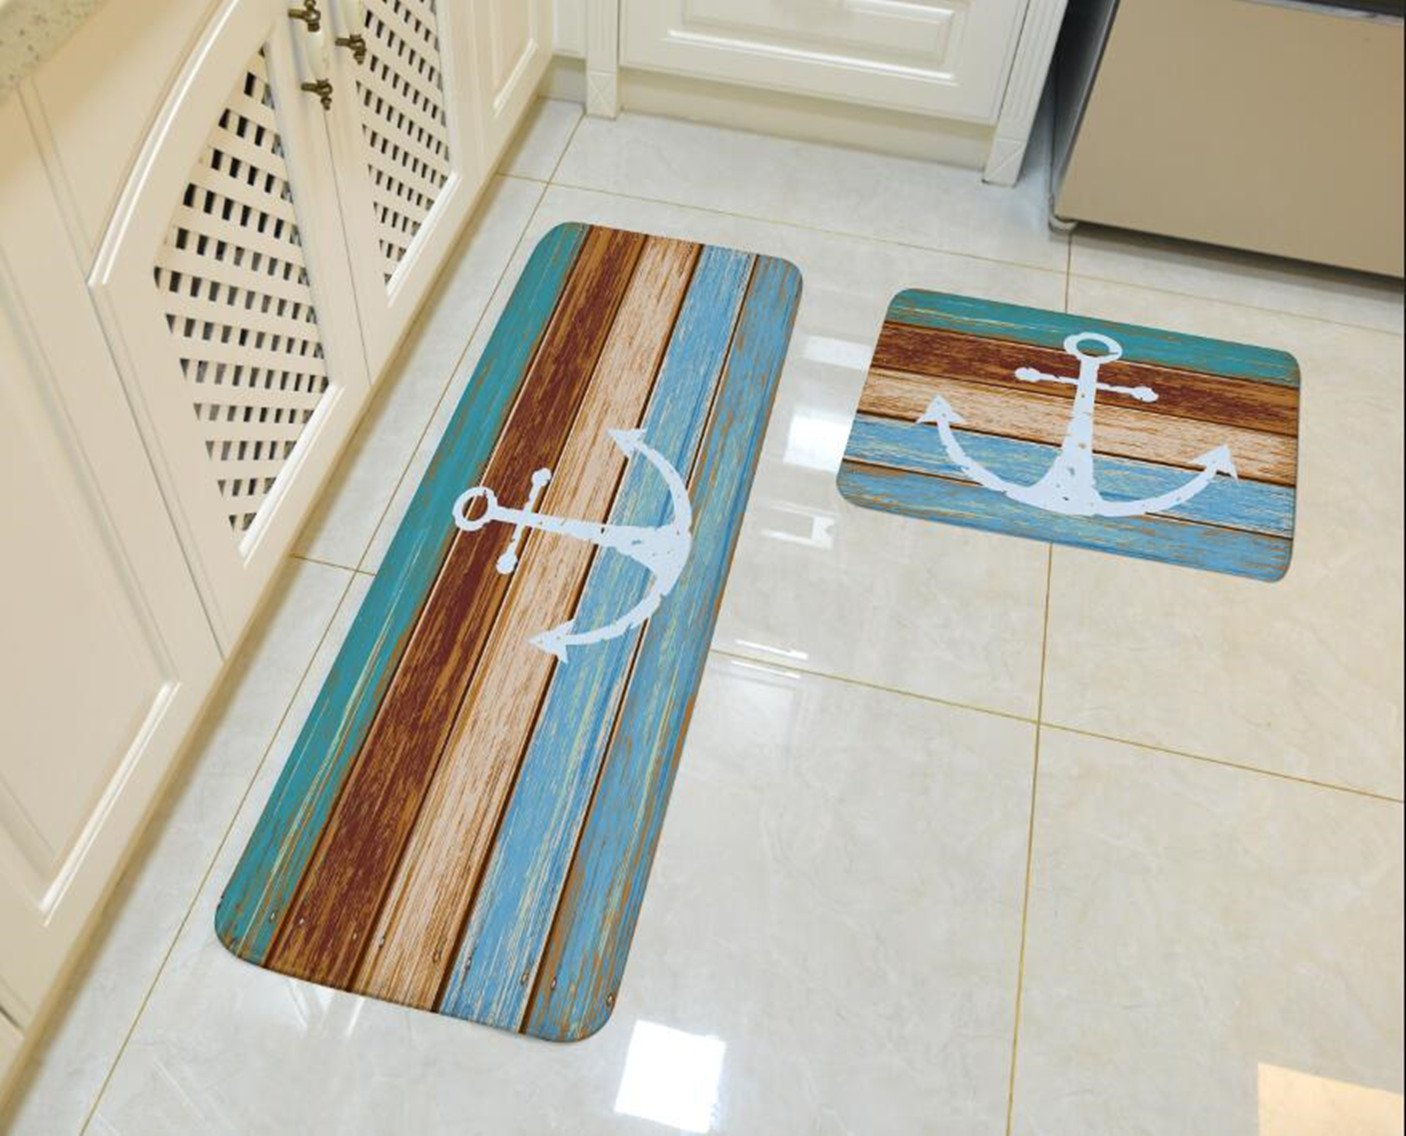 "Goodbath Kitchen Rugs, Retro Nautical Anchor Non Slip Kitchen Rug Set 2 Piece, 16"" x 48"" and 16"" x 24"", Brown and Turquoise (Anchor)"